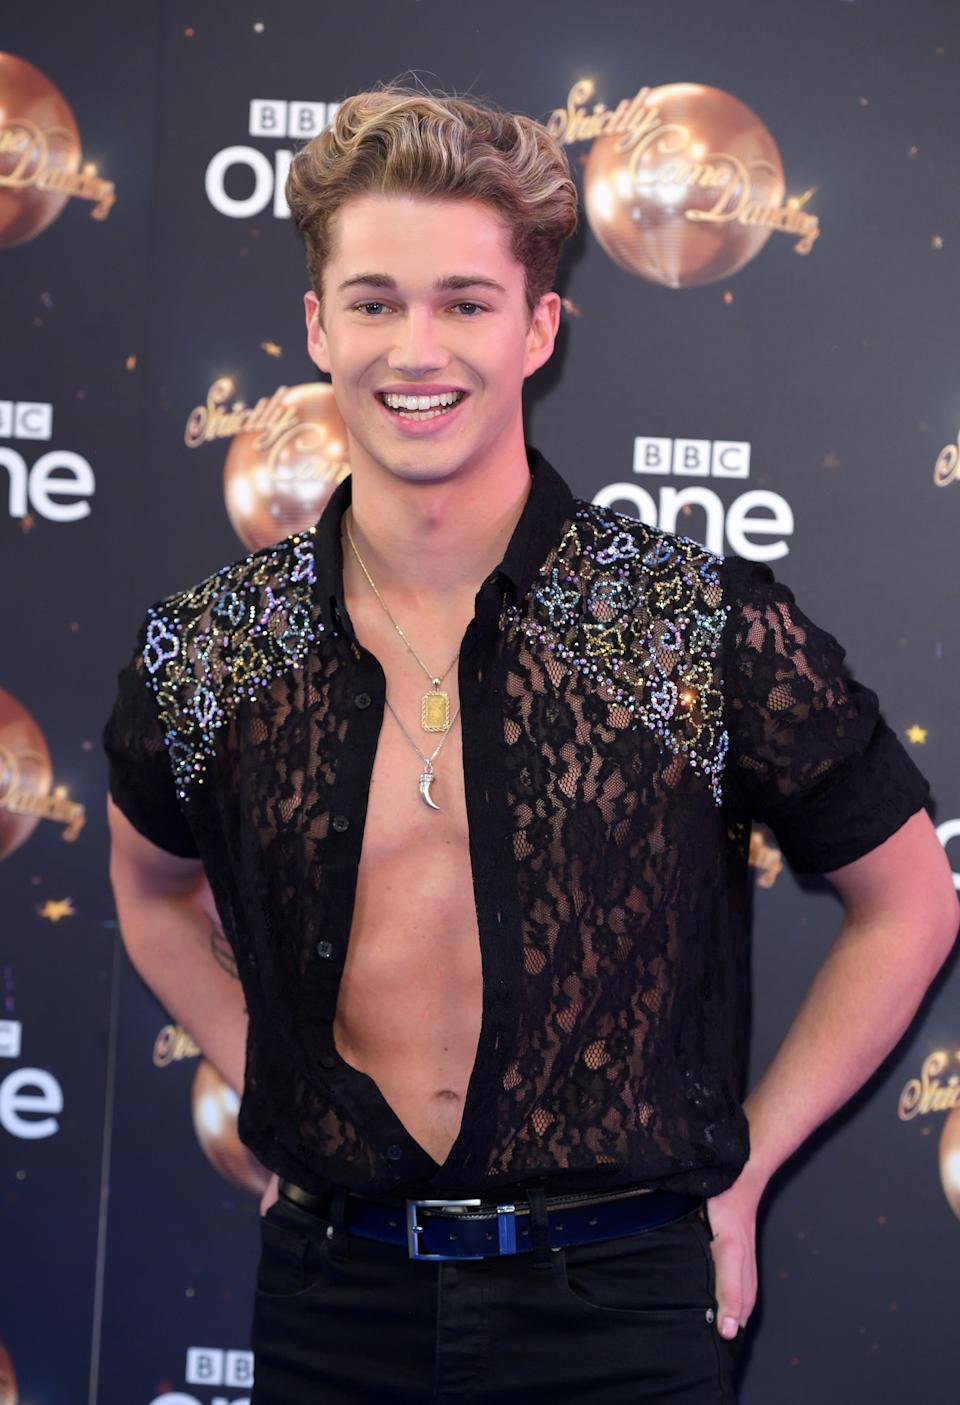 AJ Pritchard at the Strictly launch in 2018 (Photo: Karwai Tang via Getty Images)